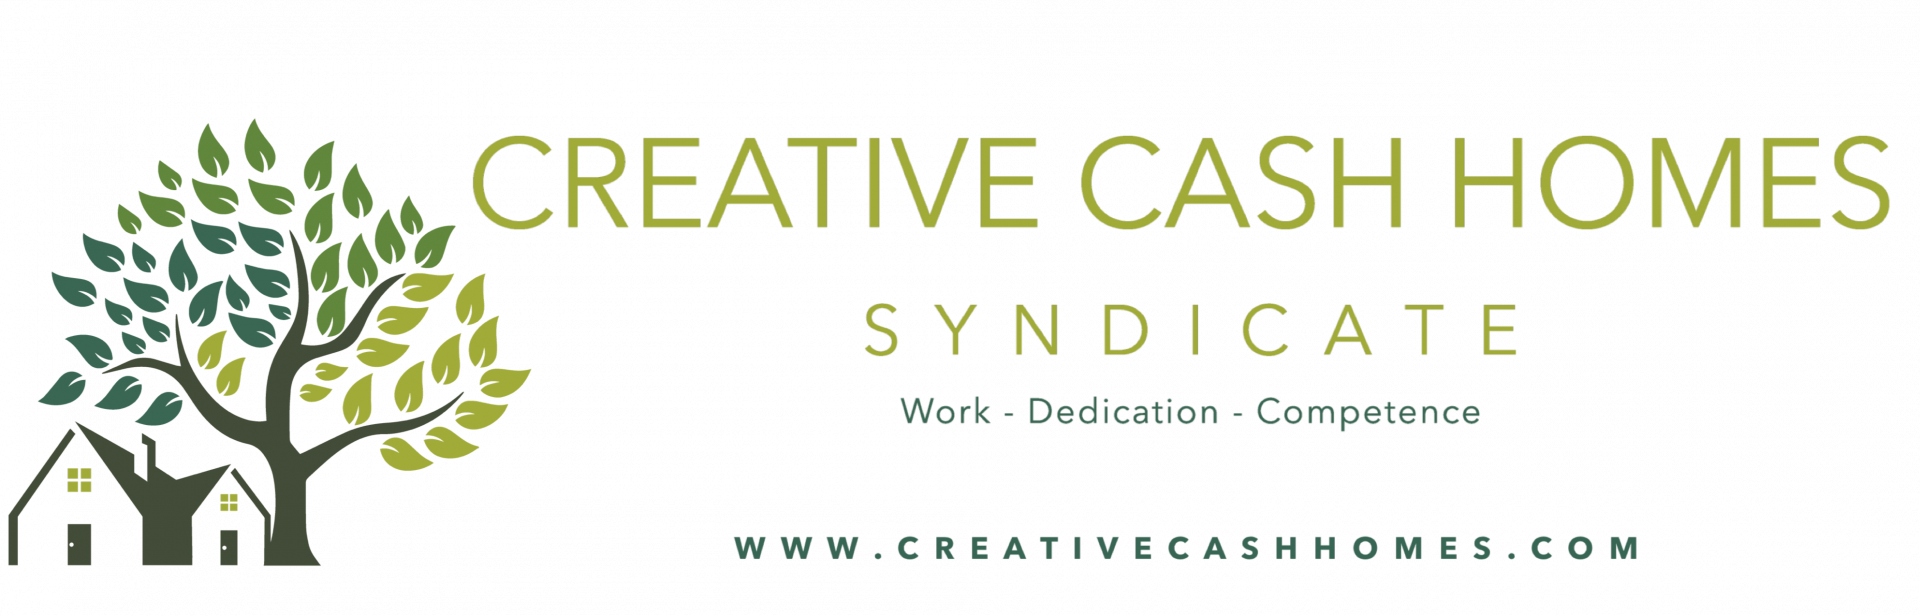 Creative Cash Homes Syndicate